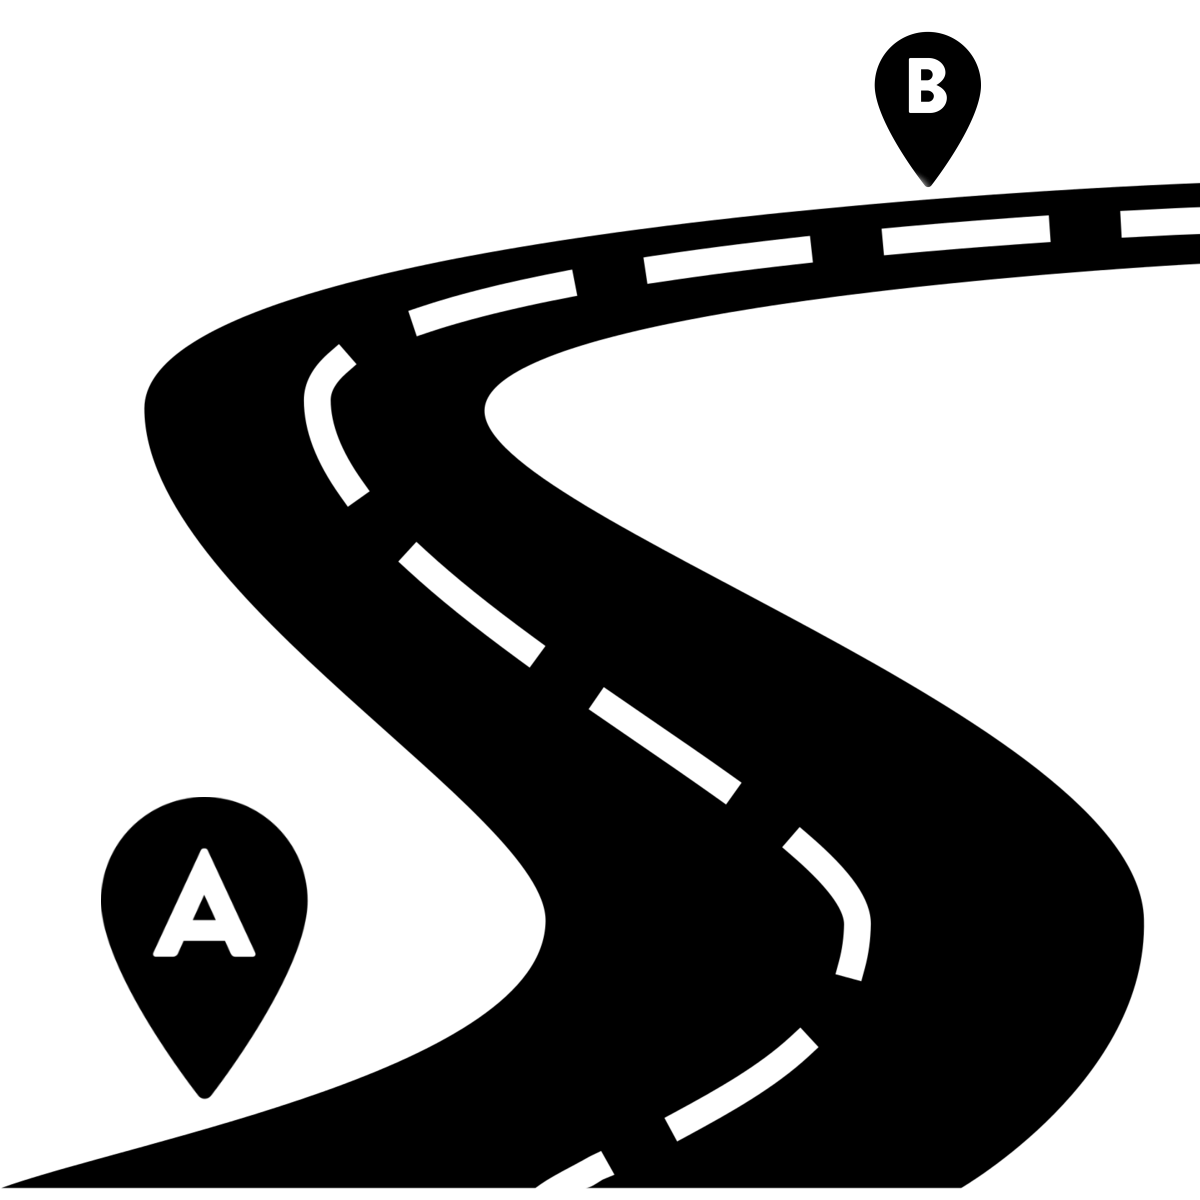 hight resolution of vector paths winding road map graphic black